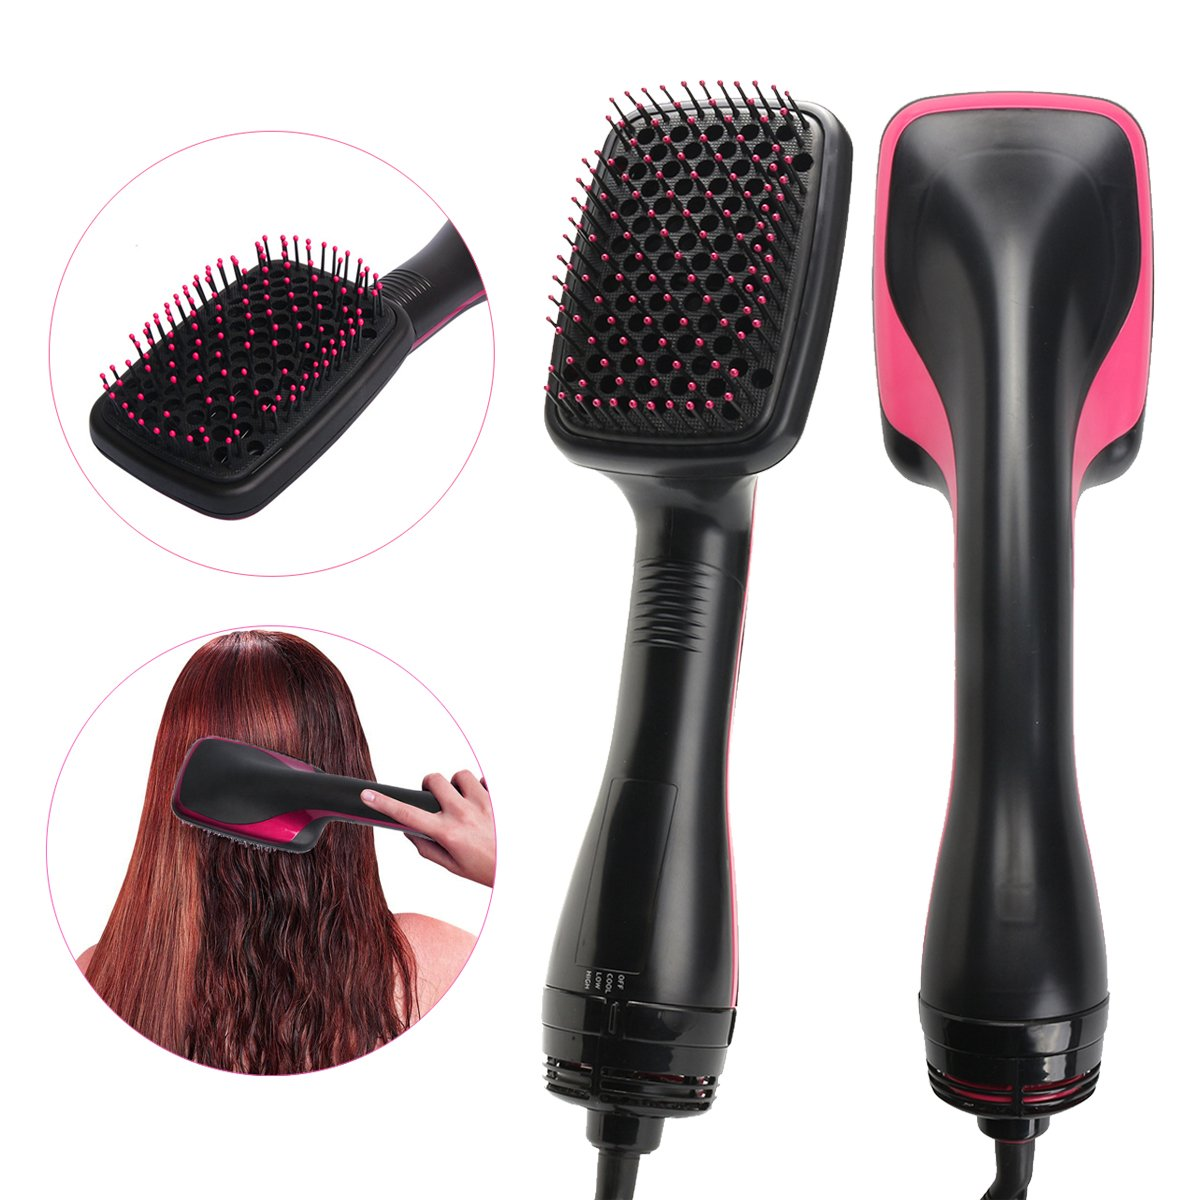 2-in-1 styling tool Y.F.M Salon Hair Brush Comb Styler 1000W Heated Hair Straightening Brush Smoothing Hair Beauty Dryer Styling